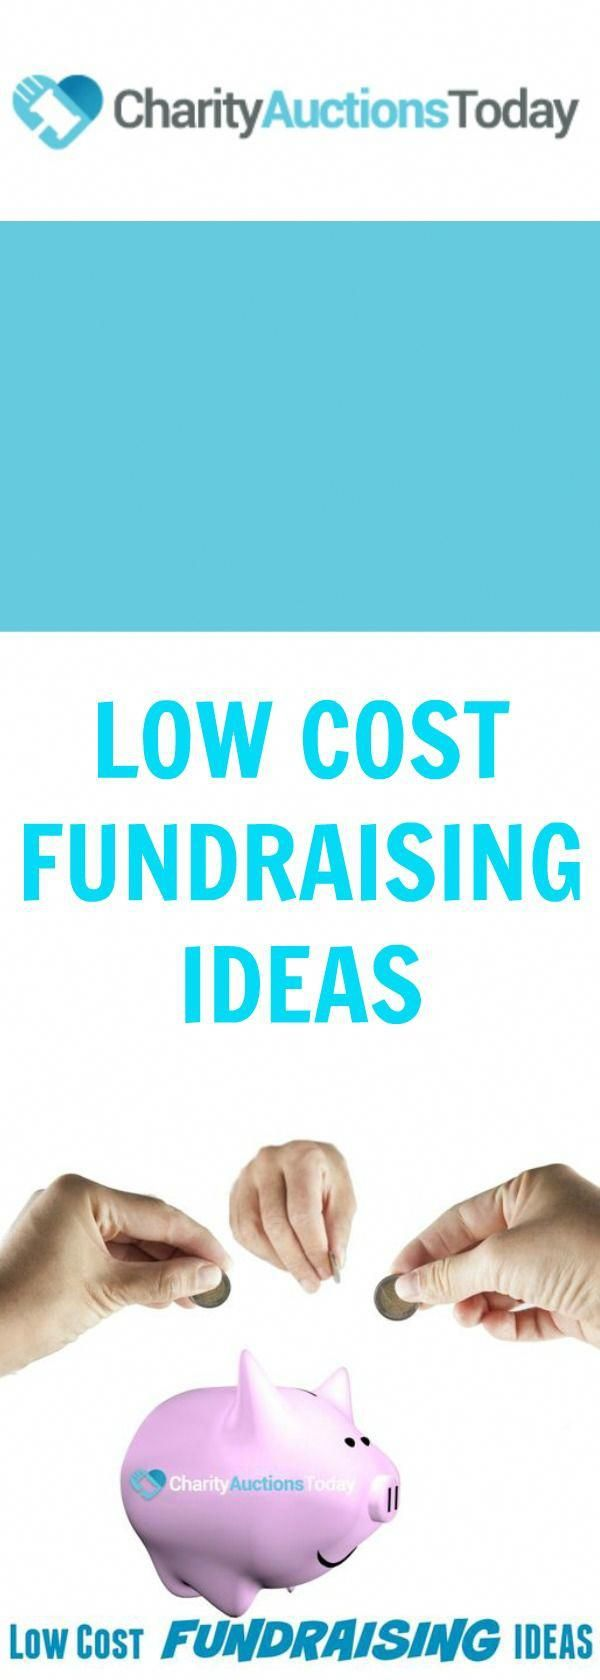 we all want to minimize these costs. the goal is to get as much of